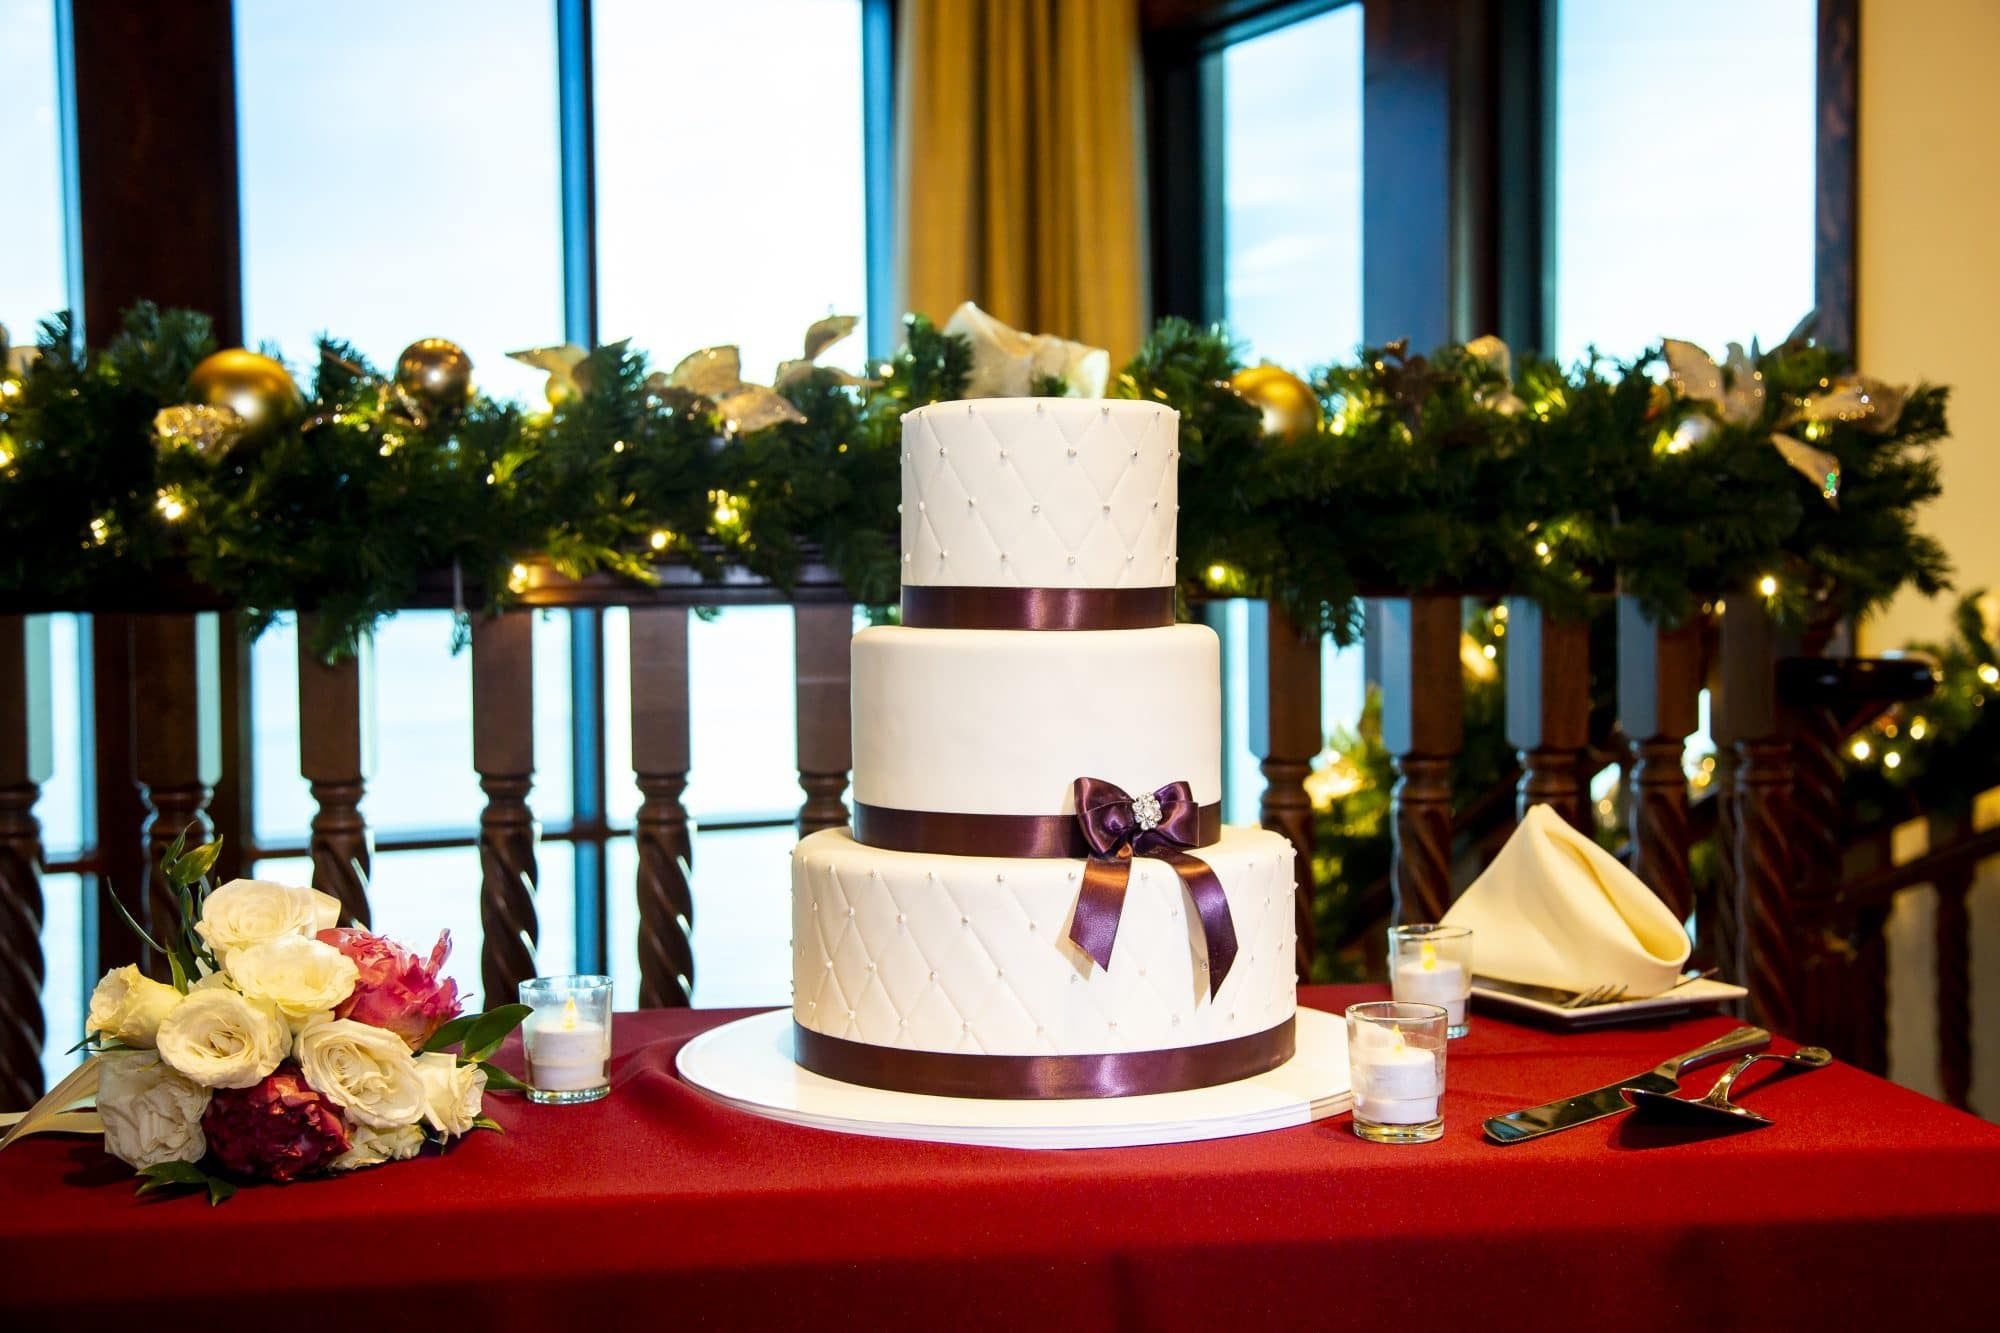 White wedding cake with purple ribbons backed by Christmas decorations